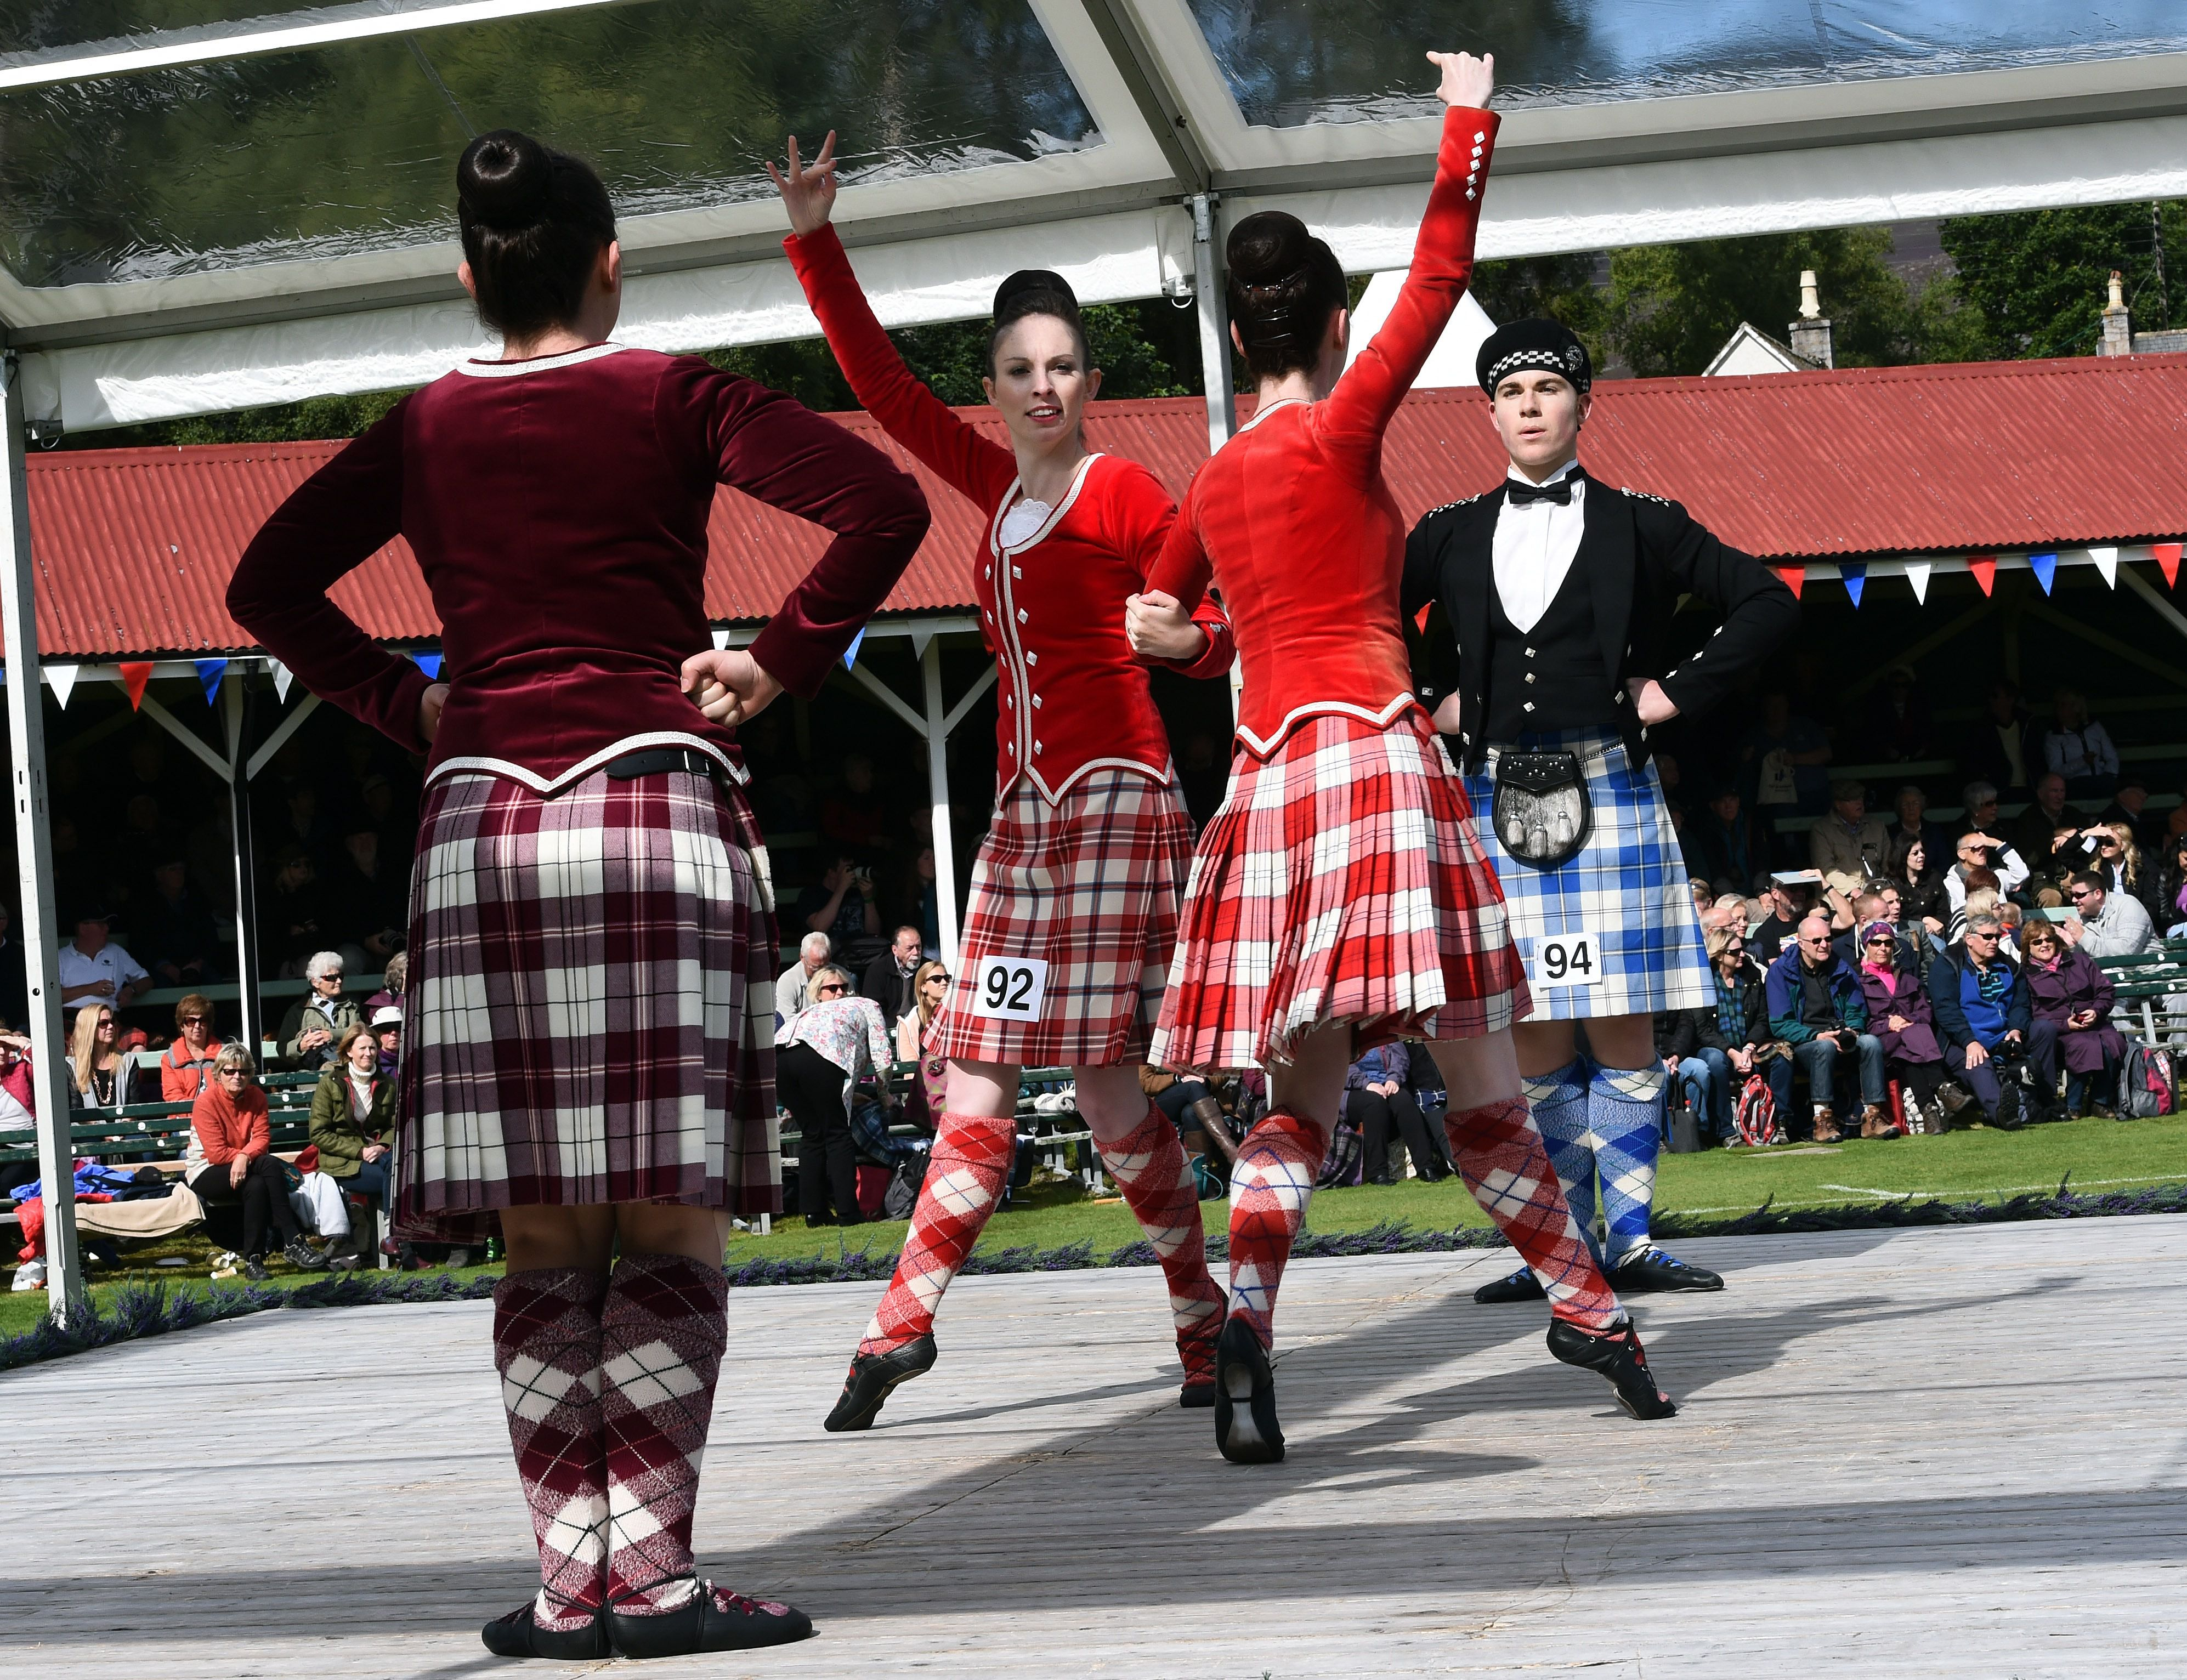 Have a Highland Fling at Scotland's Traditional Scottish Games